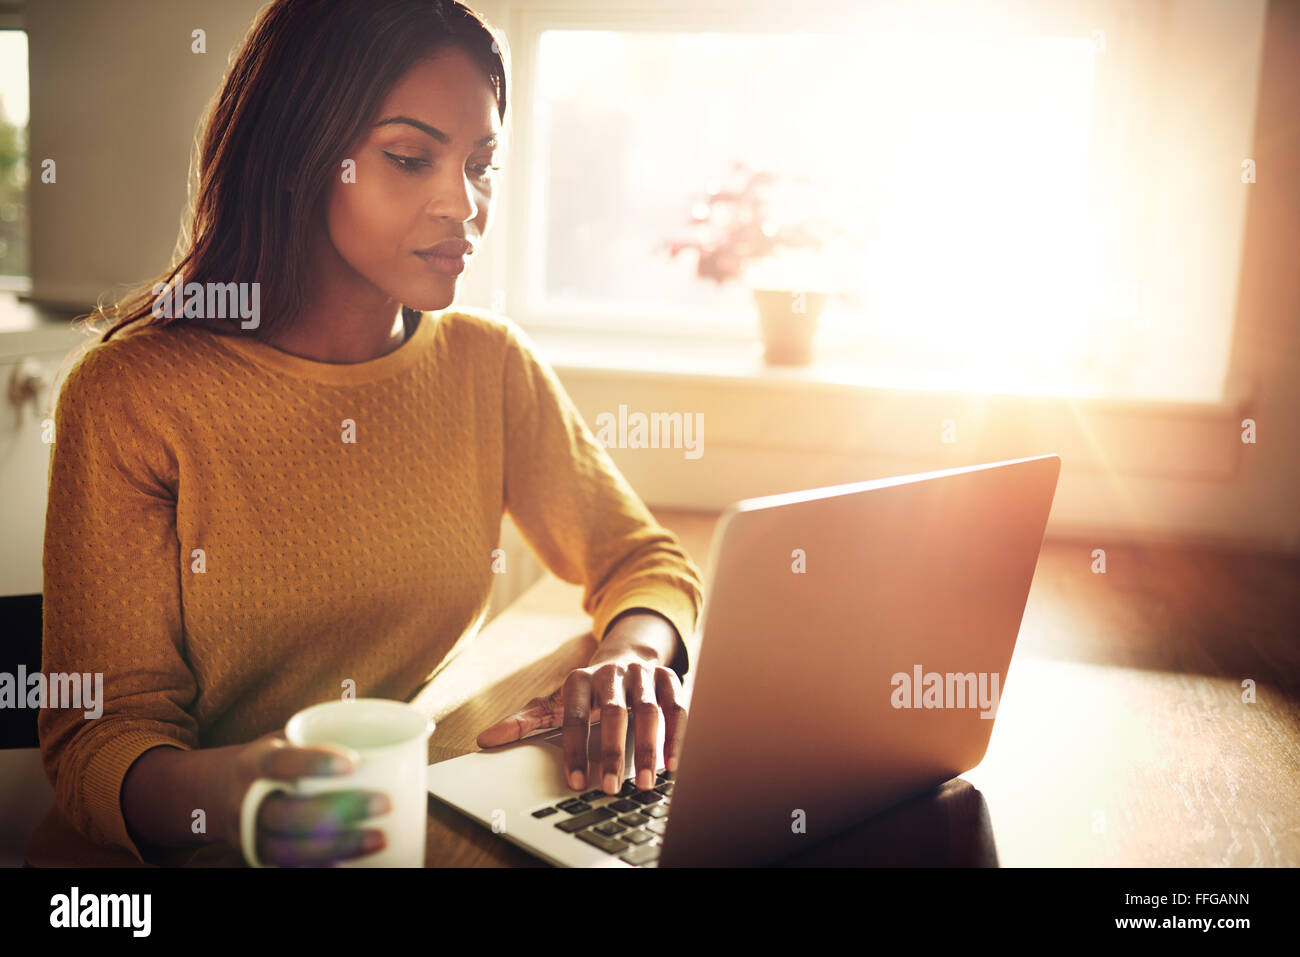 Serious Black adult single female sitting at table holding coffee cup and typing on laptop with light flare coming - Stock Image